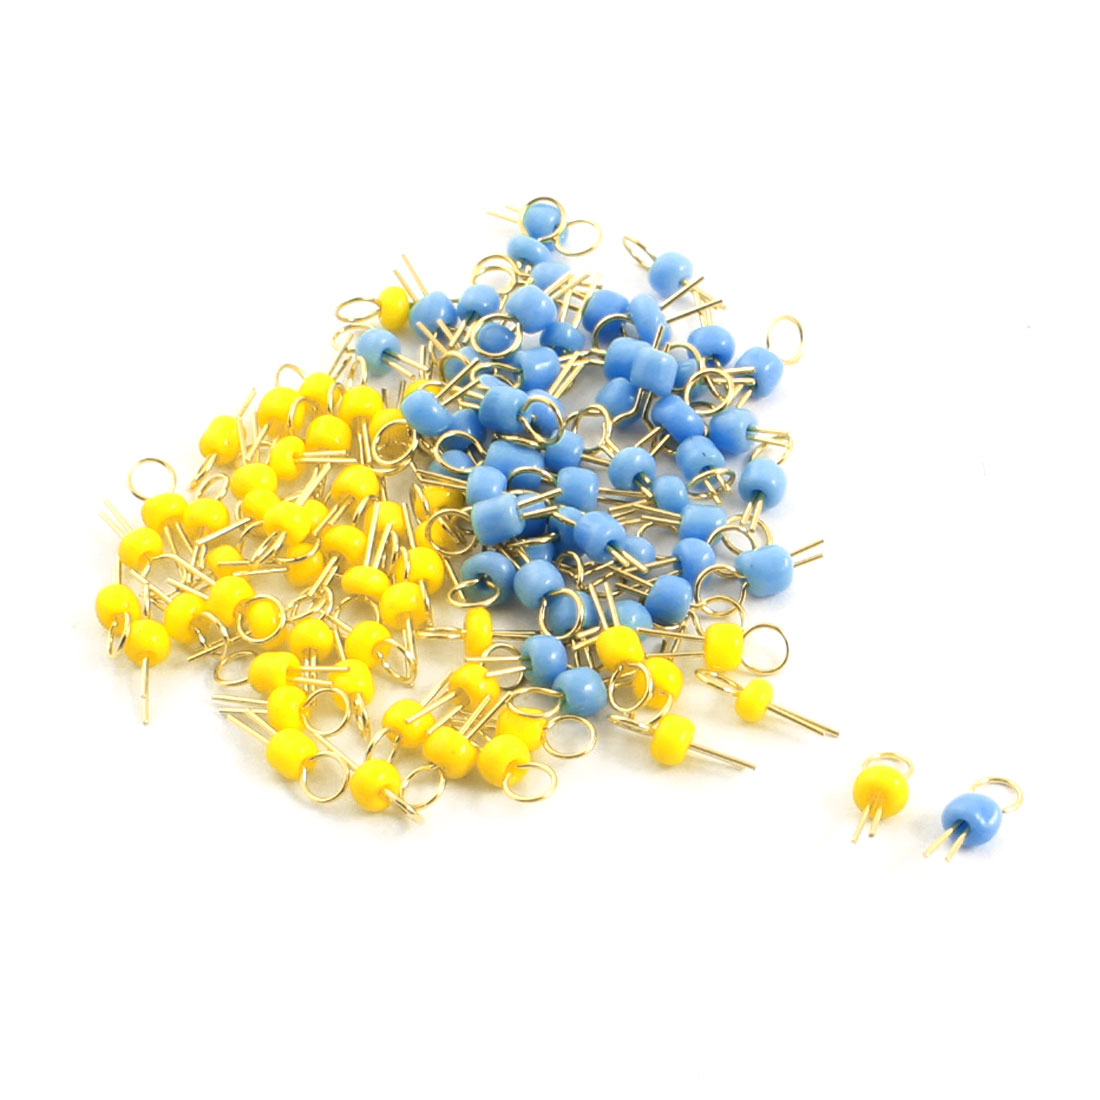 100Pcs Blue + Yellow Ceramic Bead 3.2mm Head Dia Gold Tone Copper PCB Test Pin Terminals